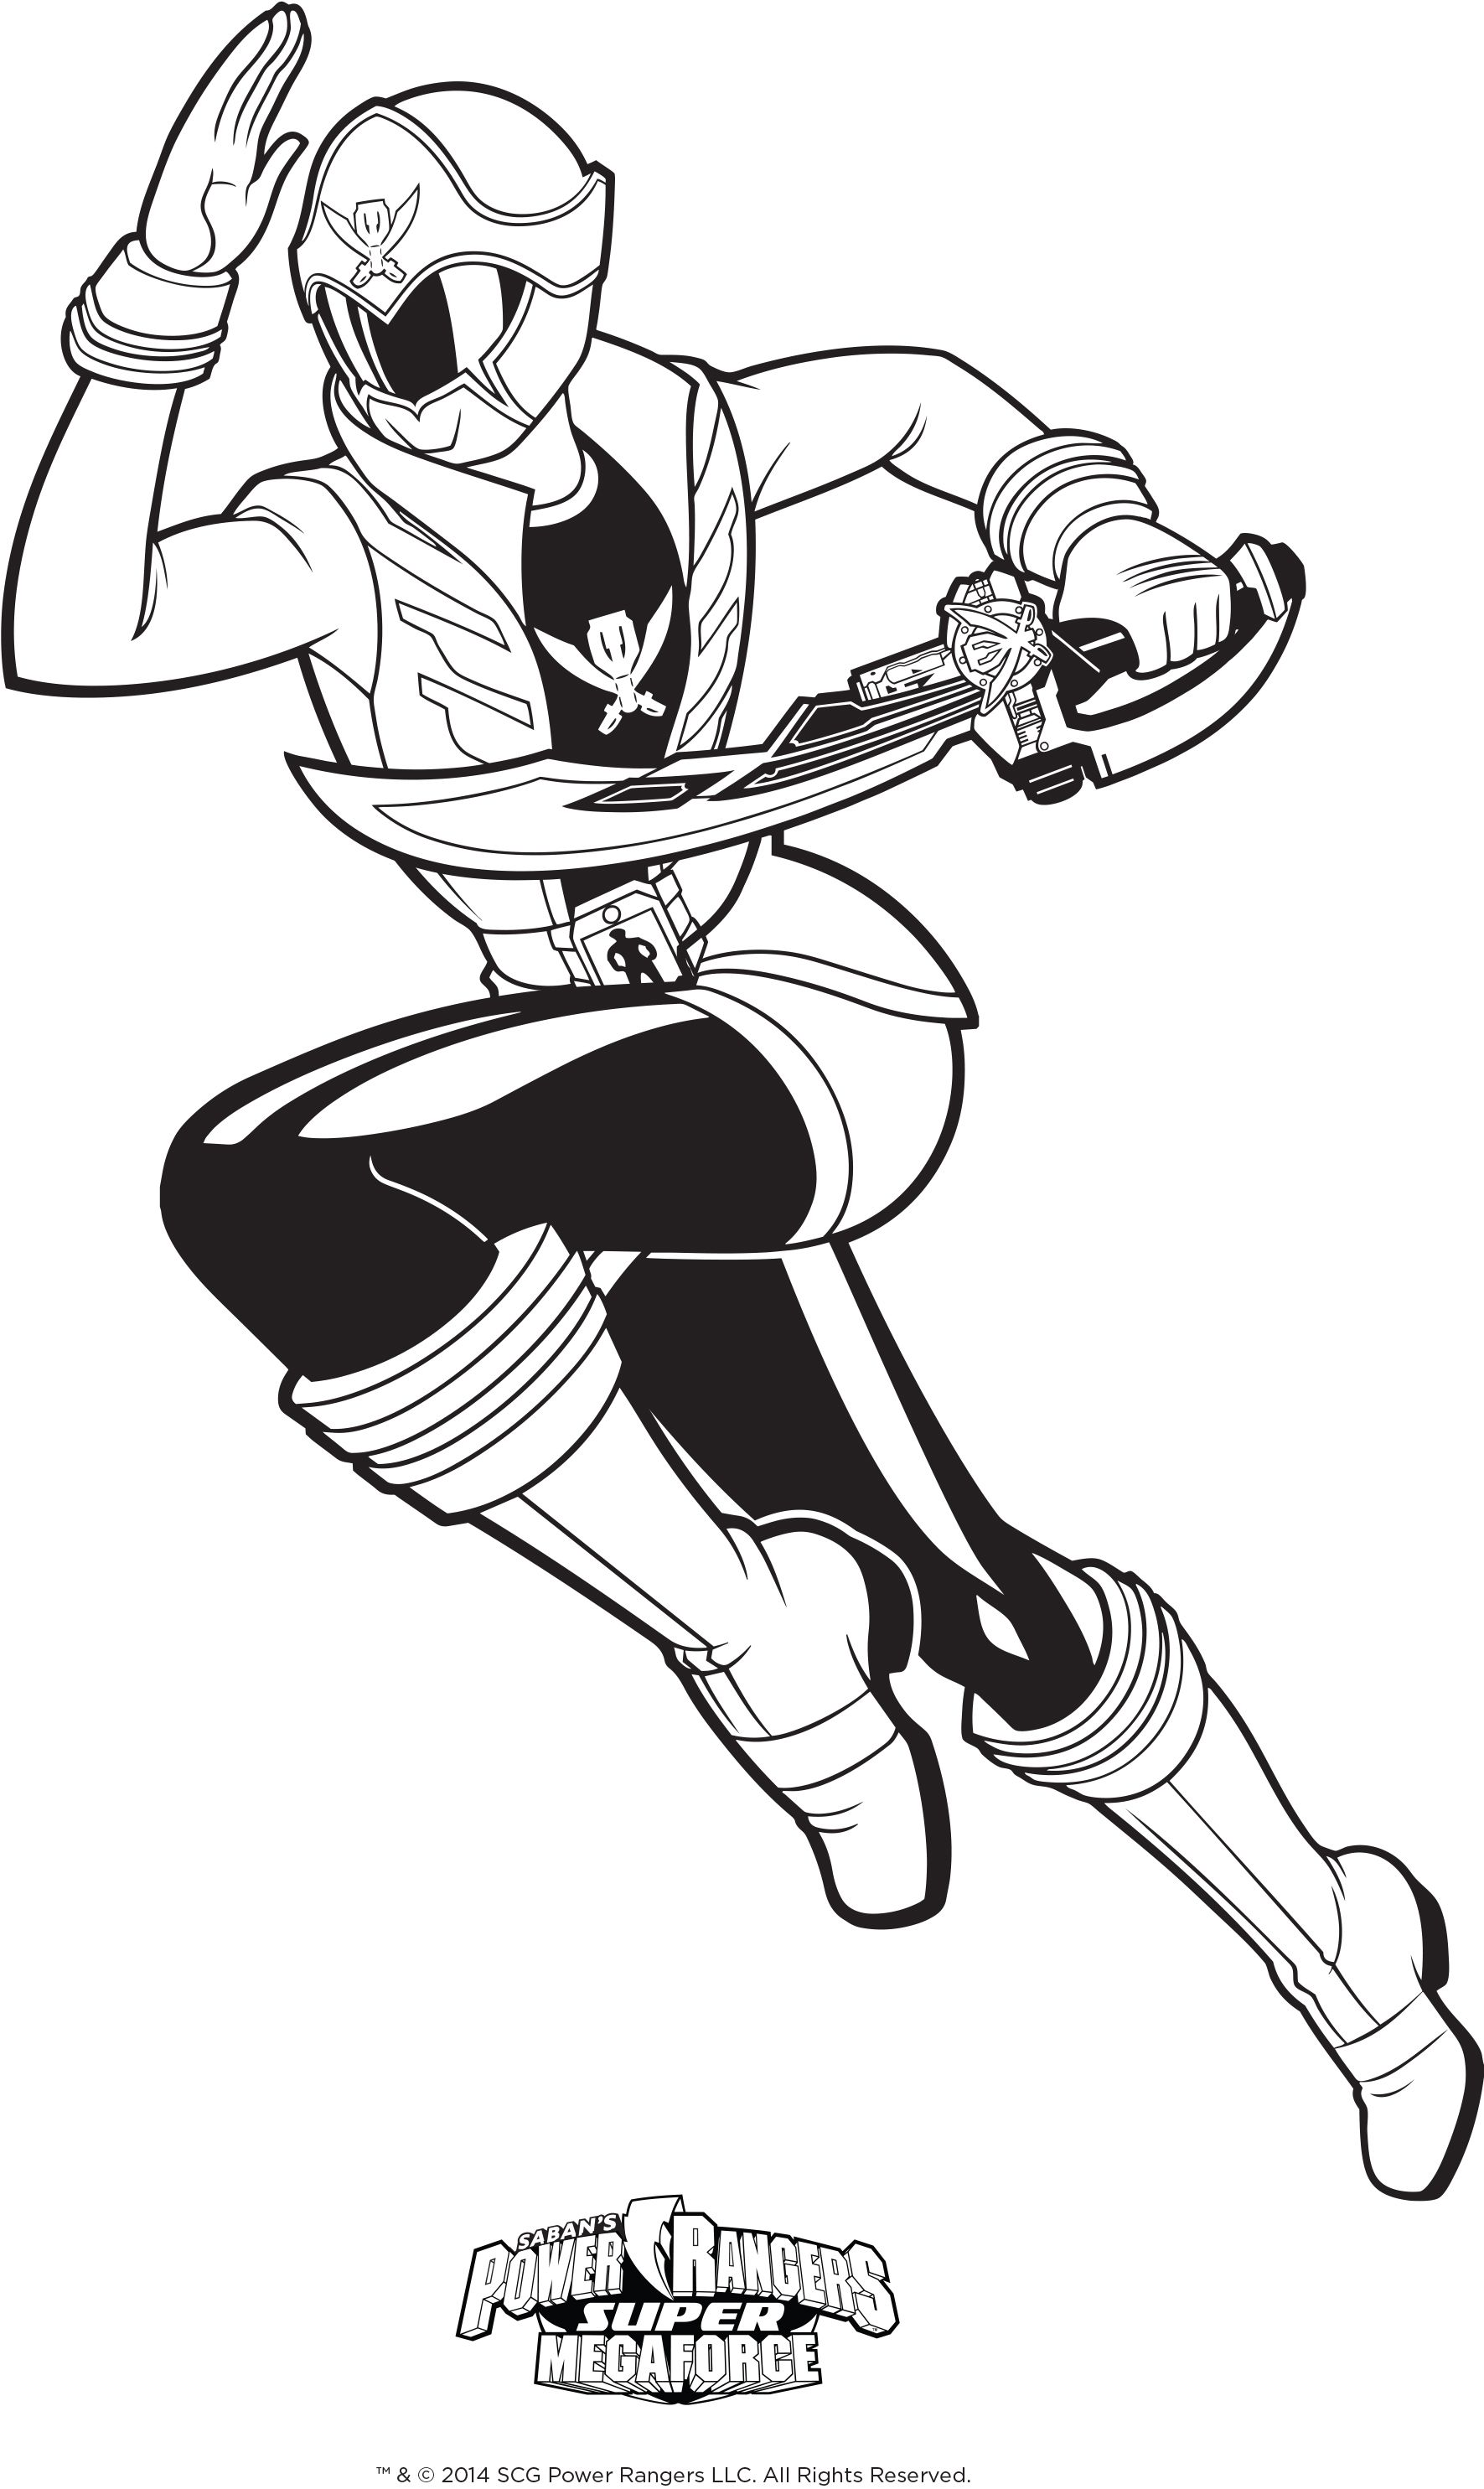 Cool Power Rangers White Ranger Coloring Page Power Rangers